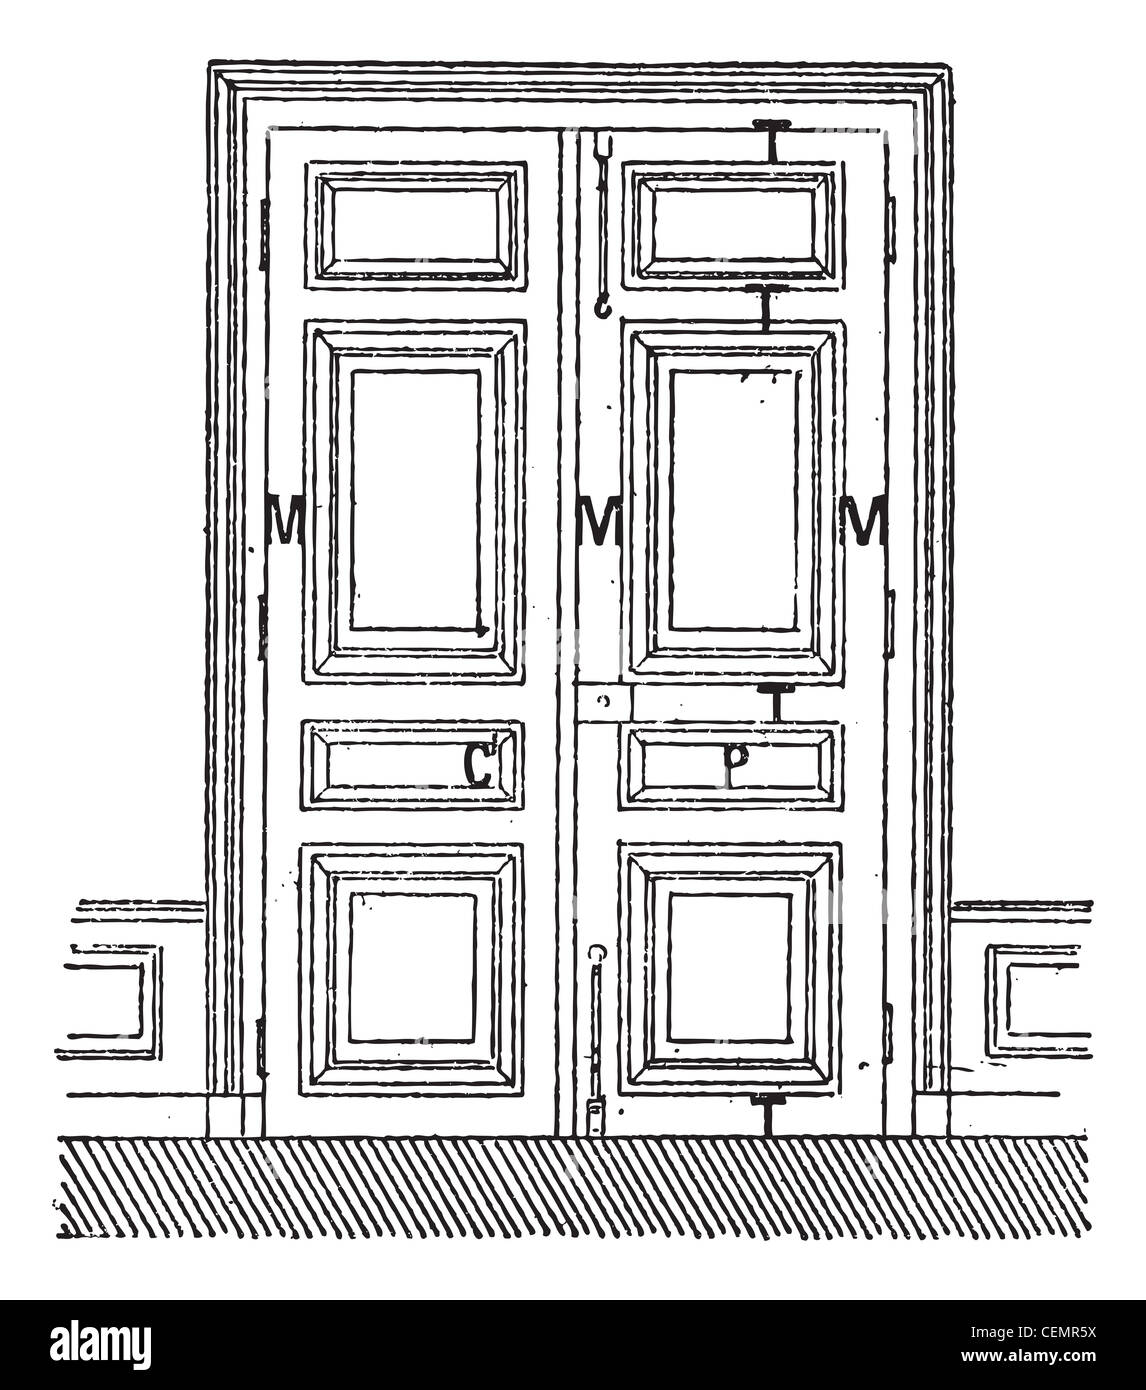 Door With Two Leaves C Frame M Amount P Billboards T Rails Vintage Engraved Illustration Dictionary Of Words And Things